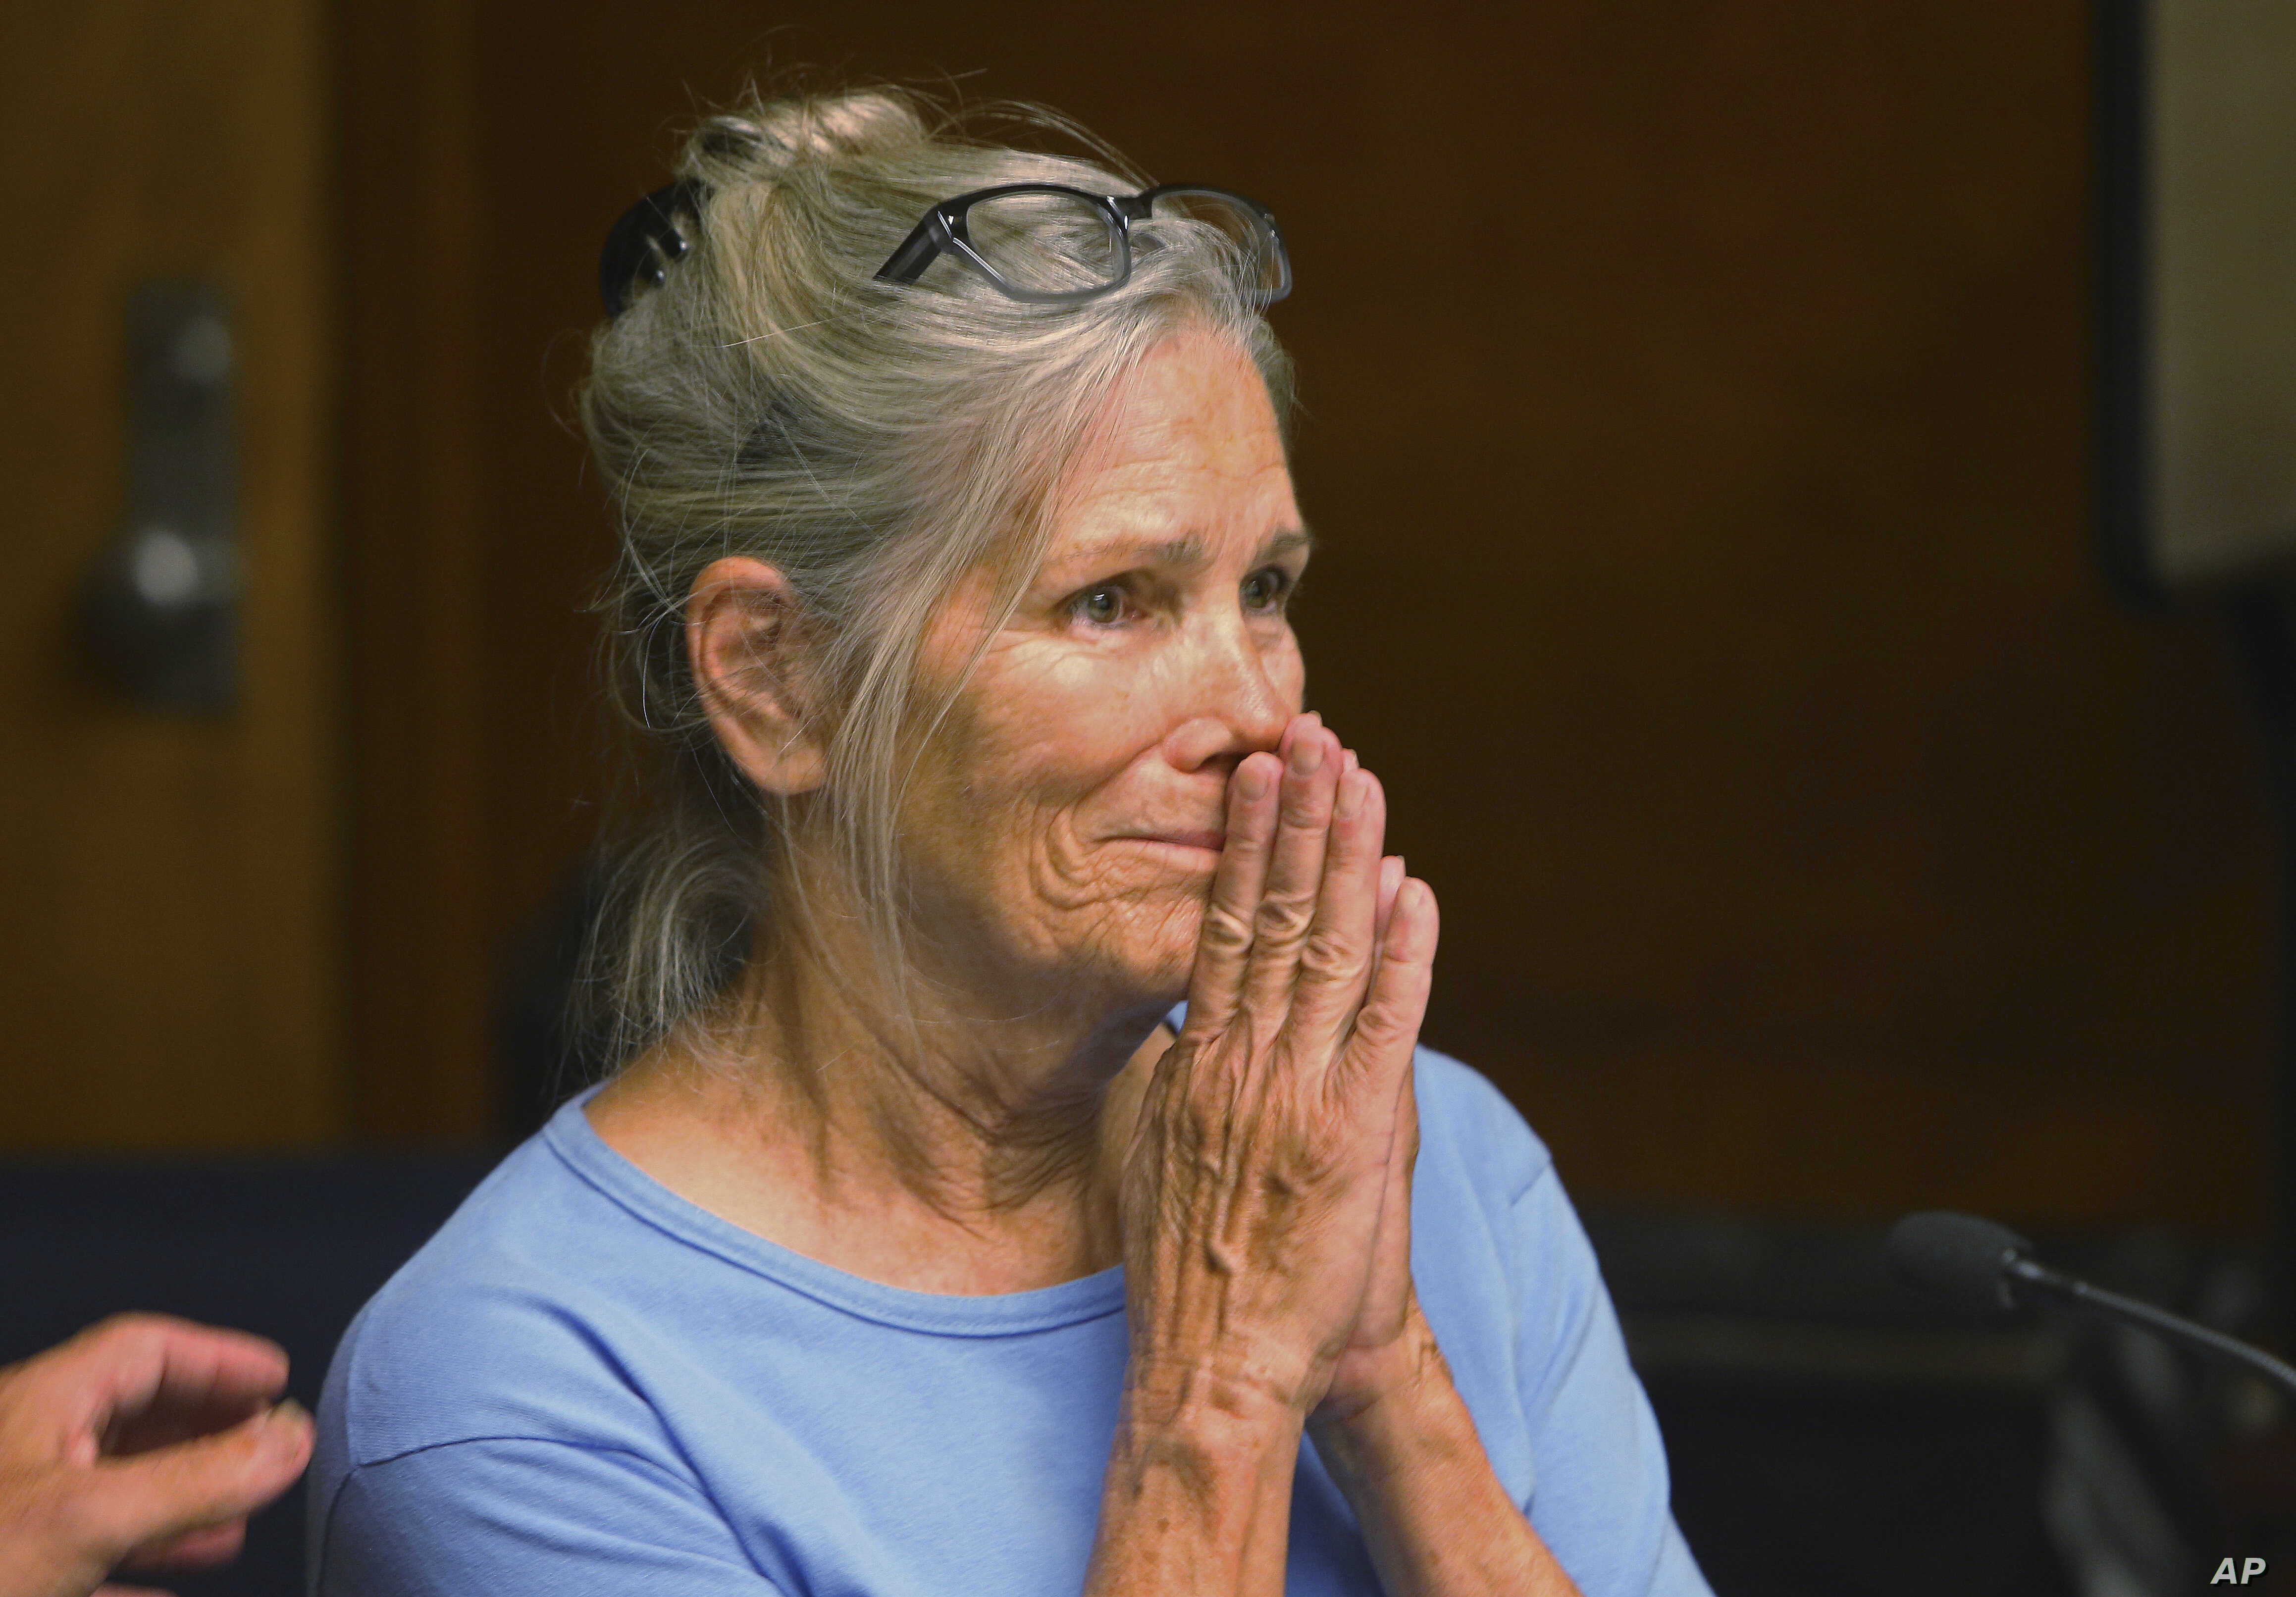 Youngest Manson Family Member Again Recommended for Parole